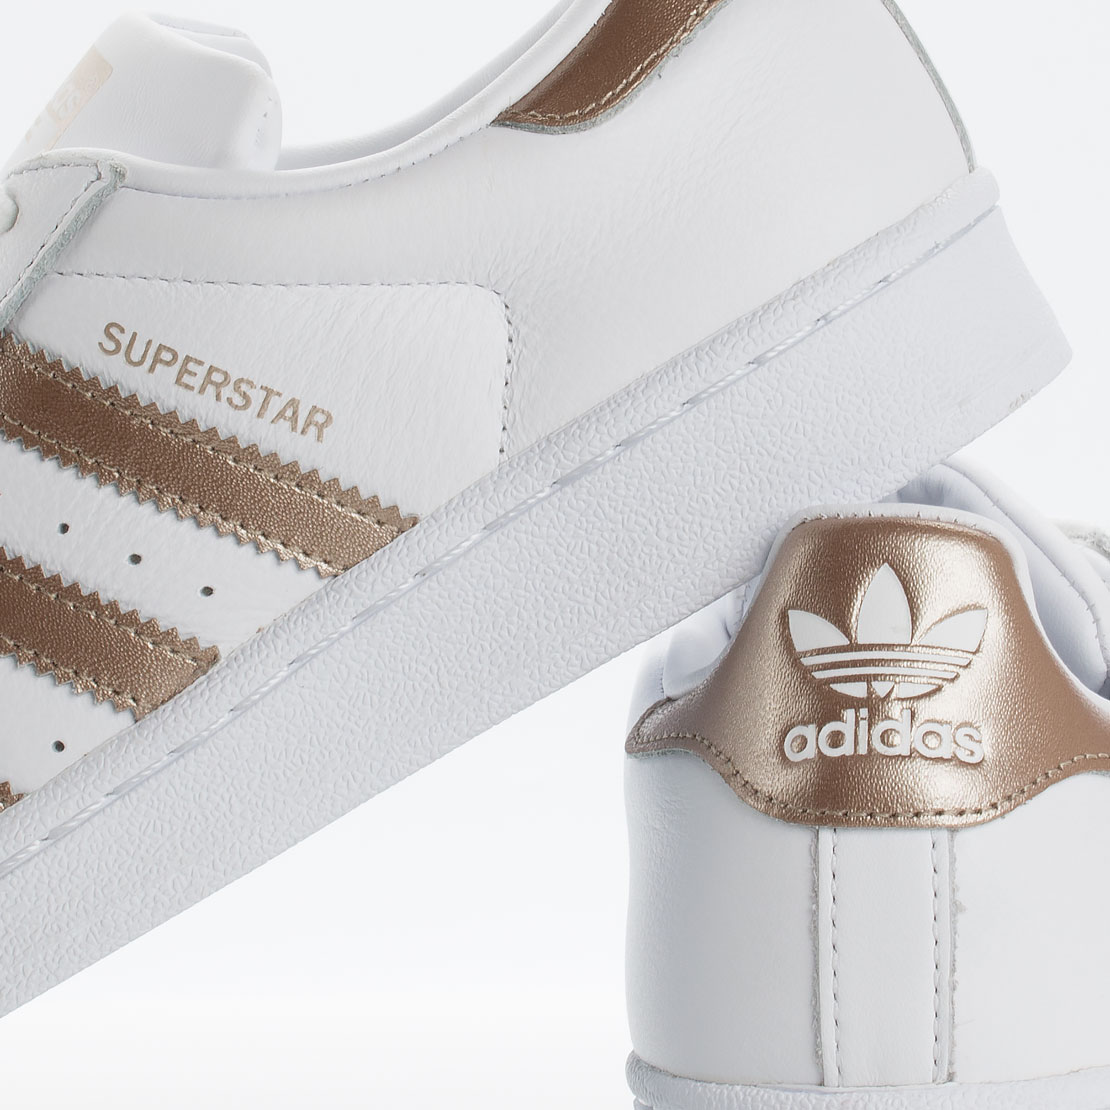 detailed look 06228 59154 Adidas Superstar W CG5463 — Punto Moda  Outlet Firme